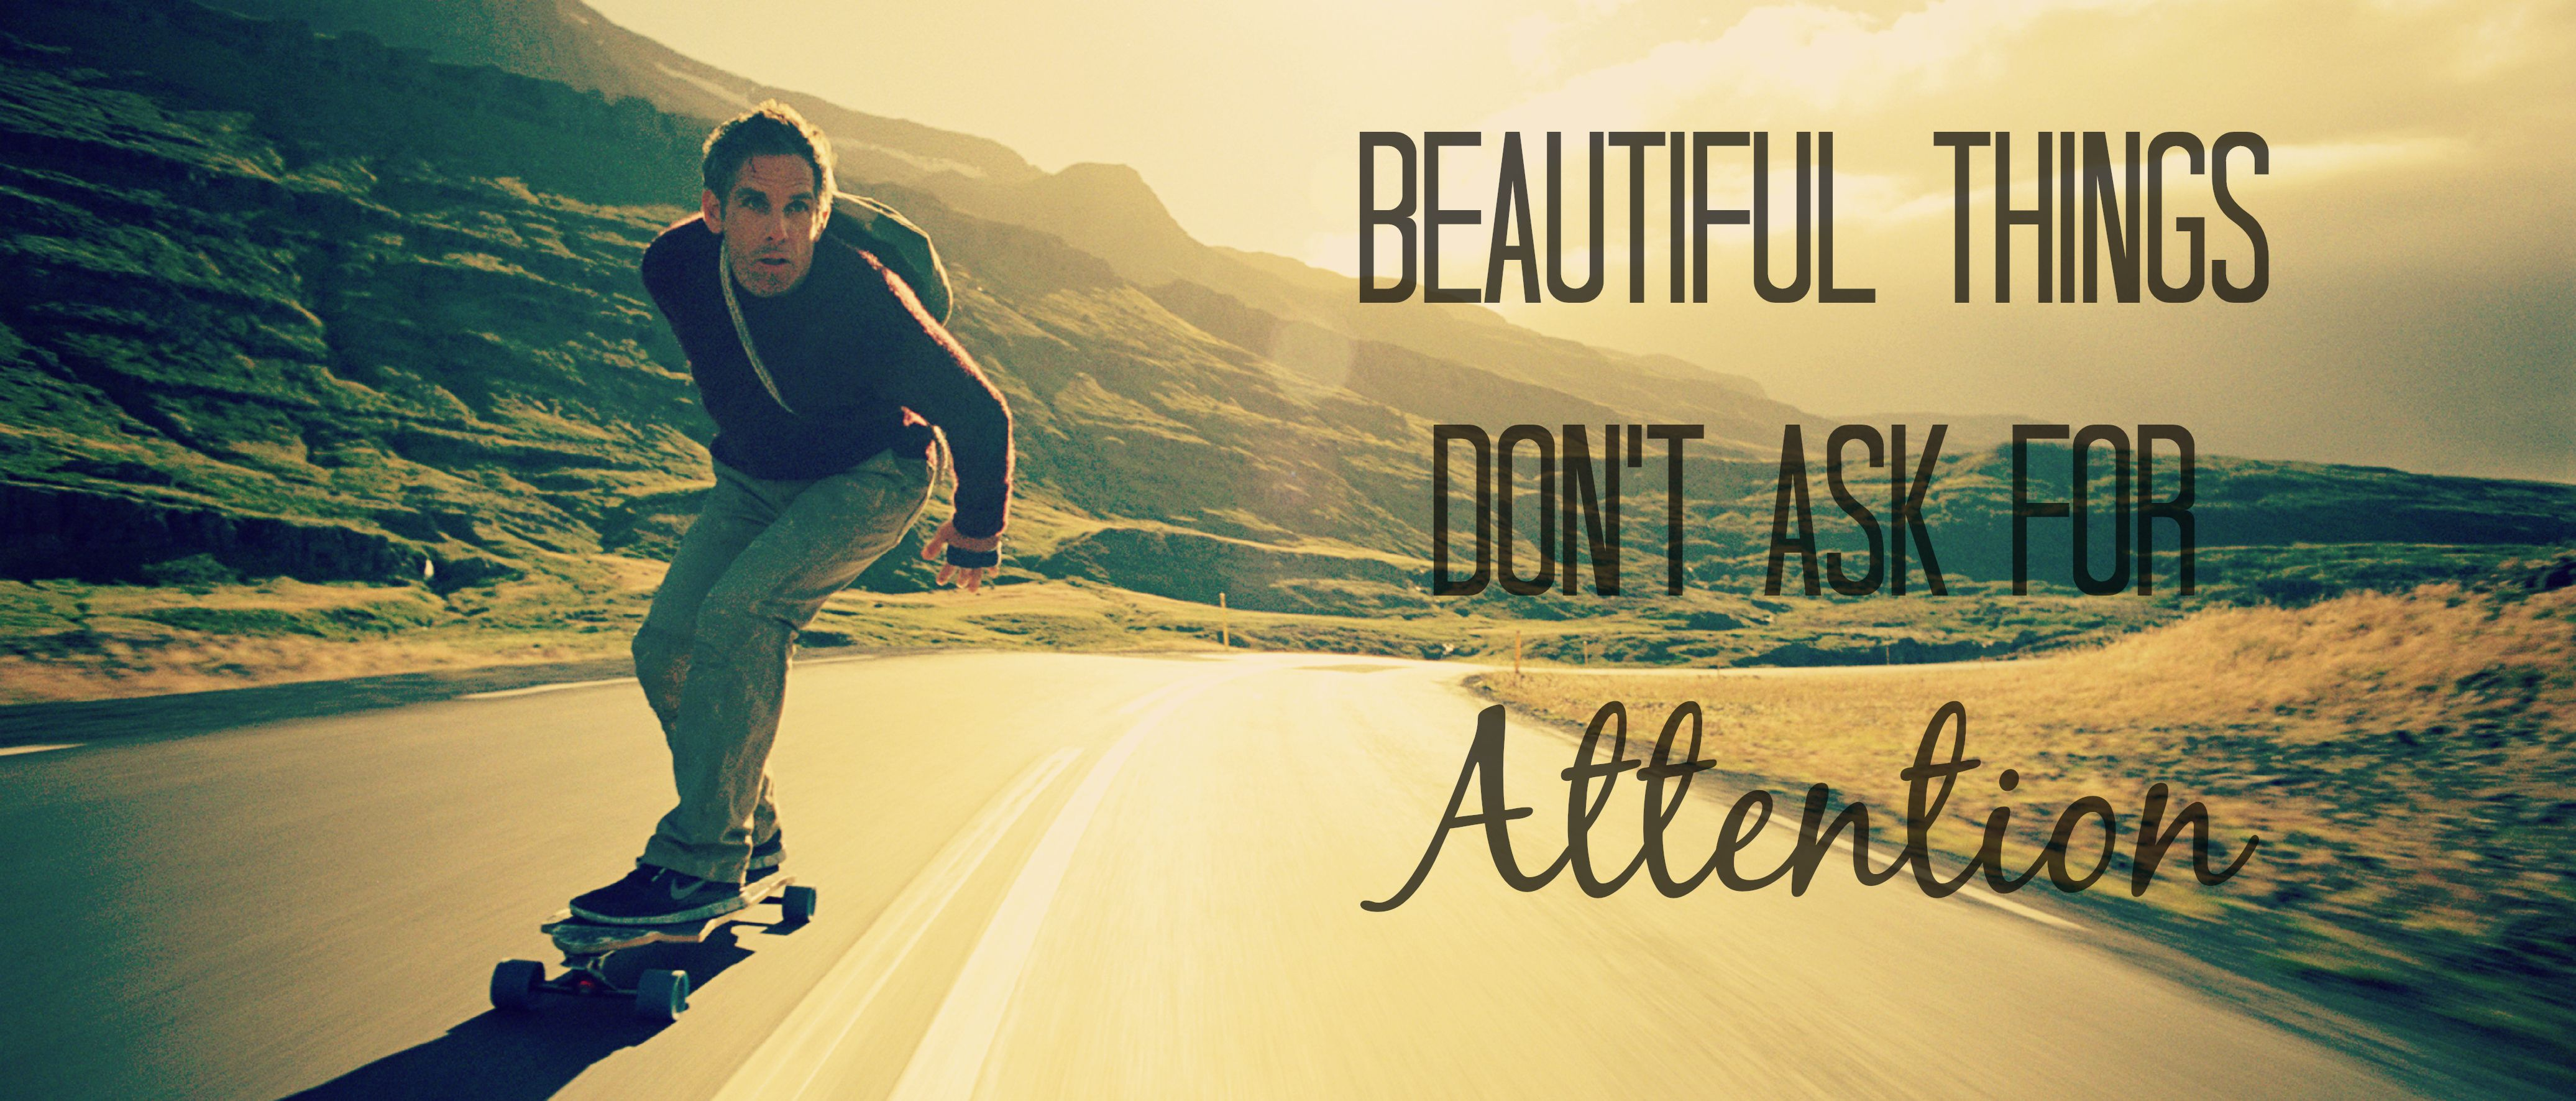 The secret life of walter mitty quotes films tunes - Stop wishing start doing hd wallpaper ...